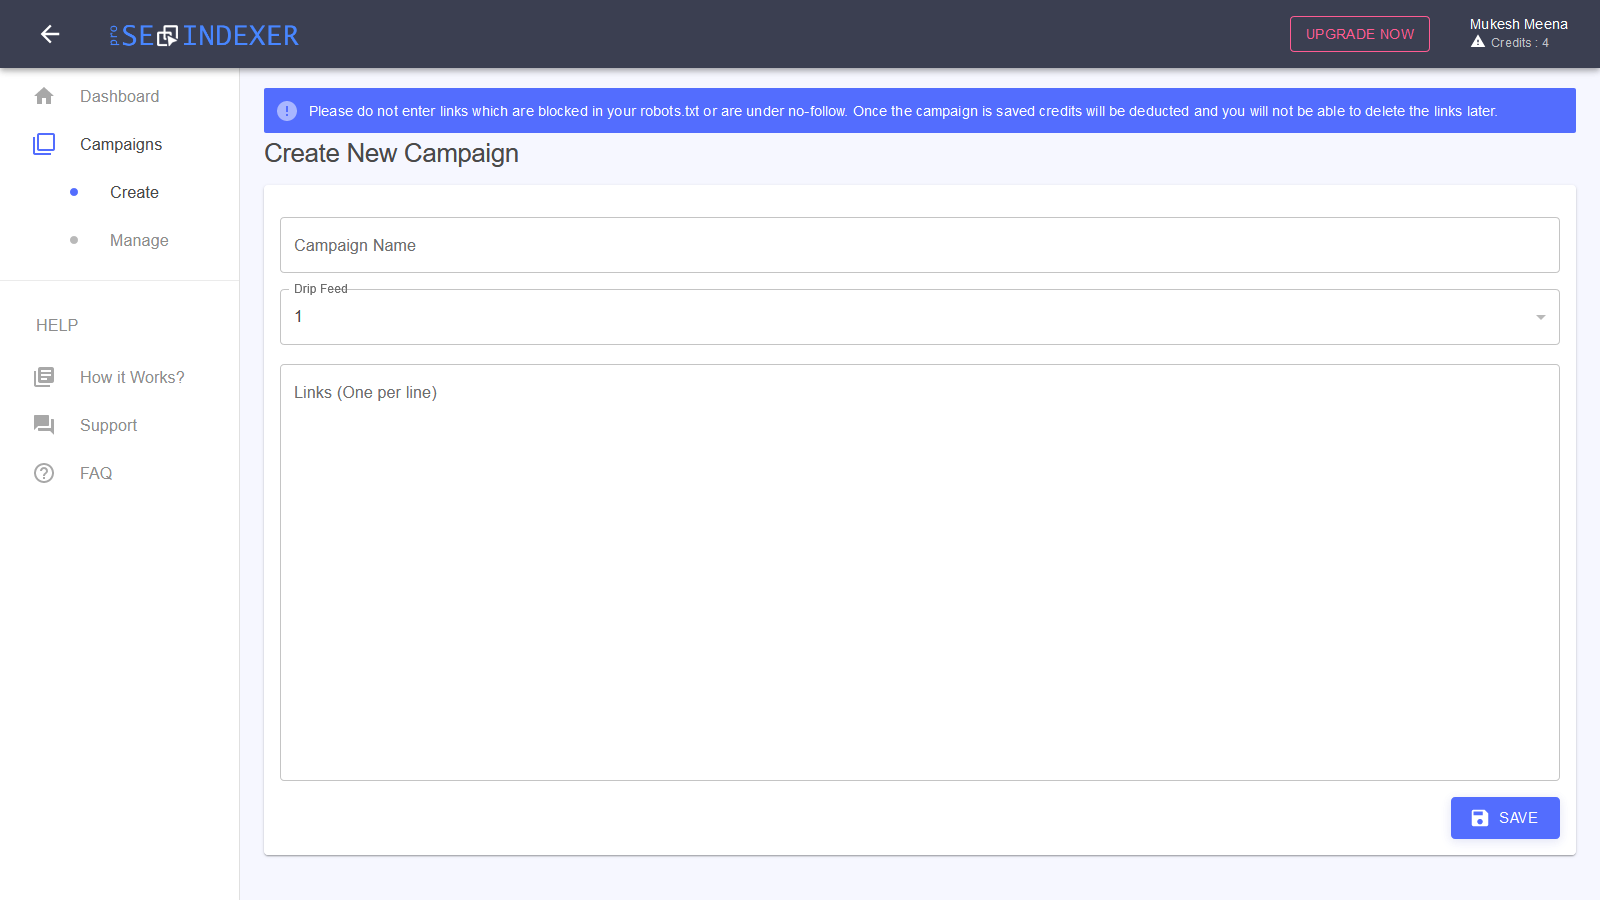 ProSEOIndexer - Create Campaign